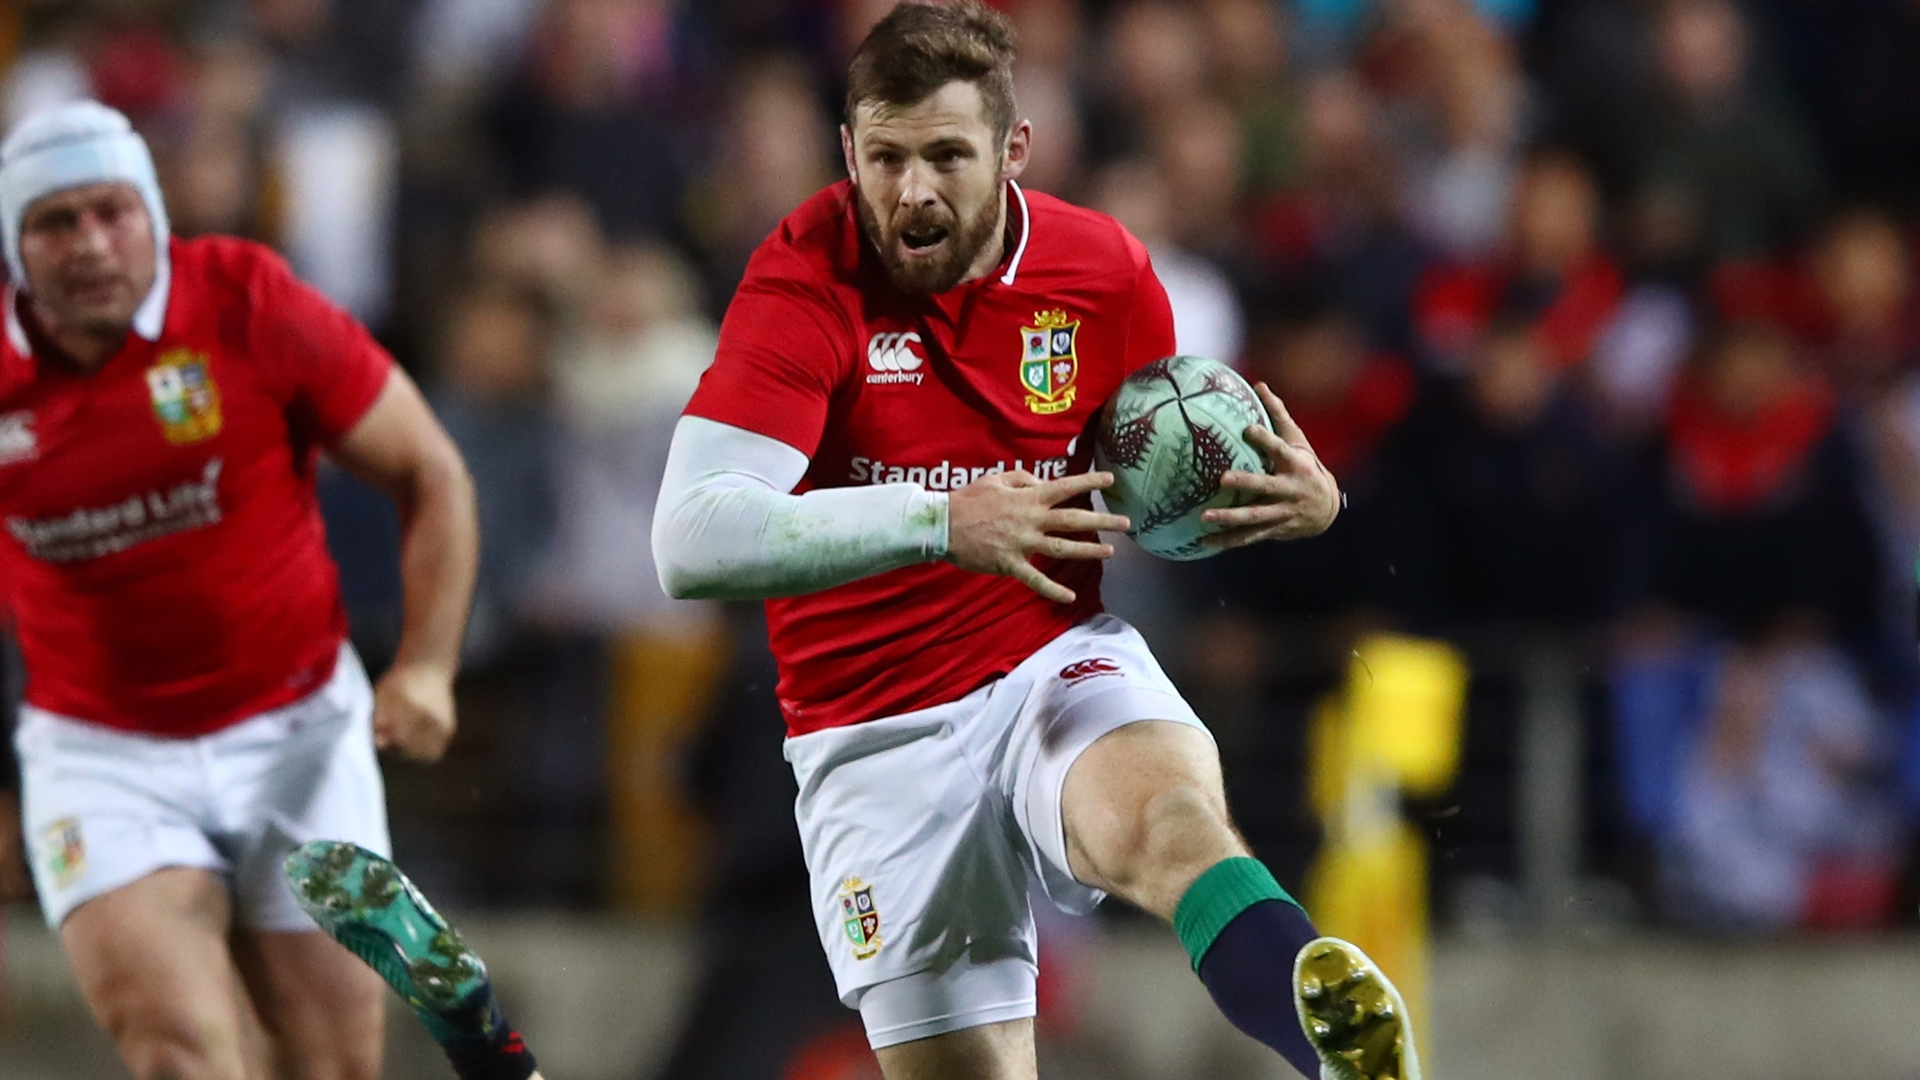 British Lions beat Chiefs 34-6 in last match before 1st test